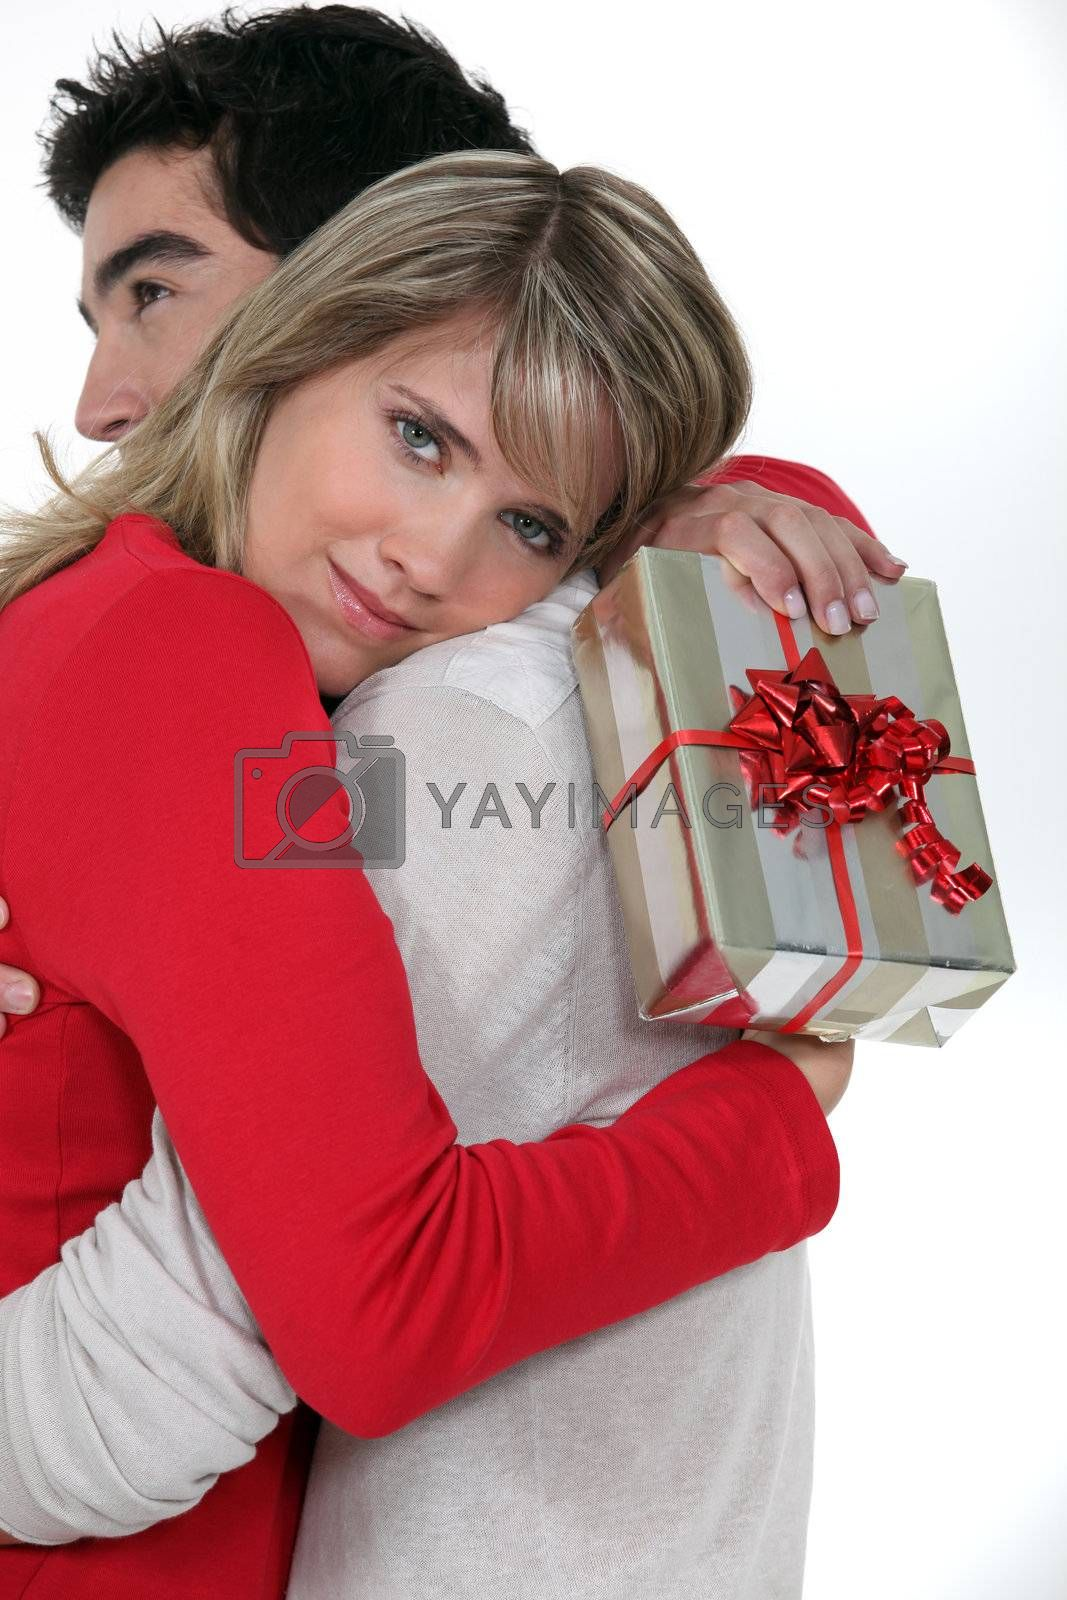 Woman thanking her boyfriend for his gift Jesus_Michael_220311,Belloche_Lola_220311